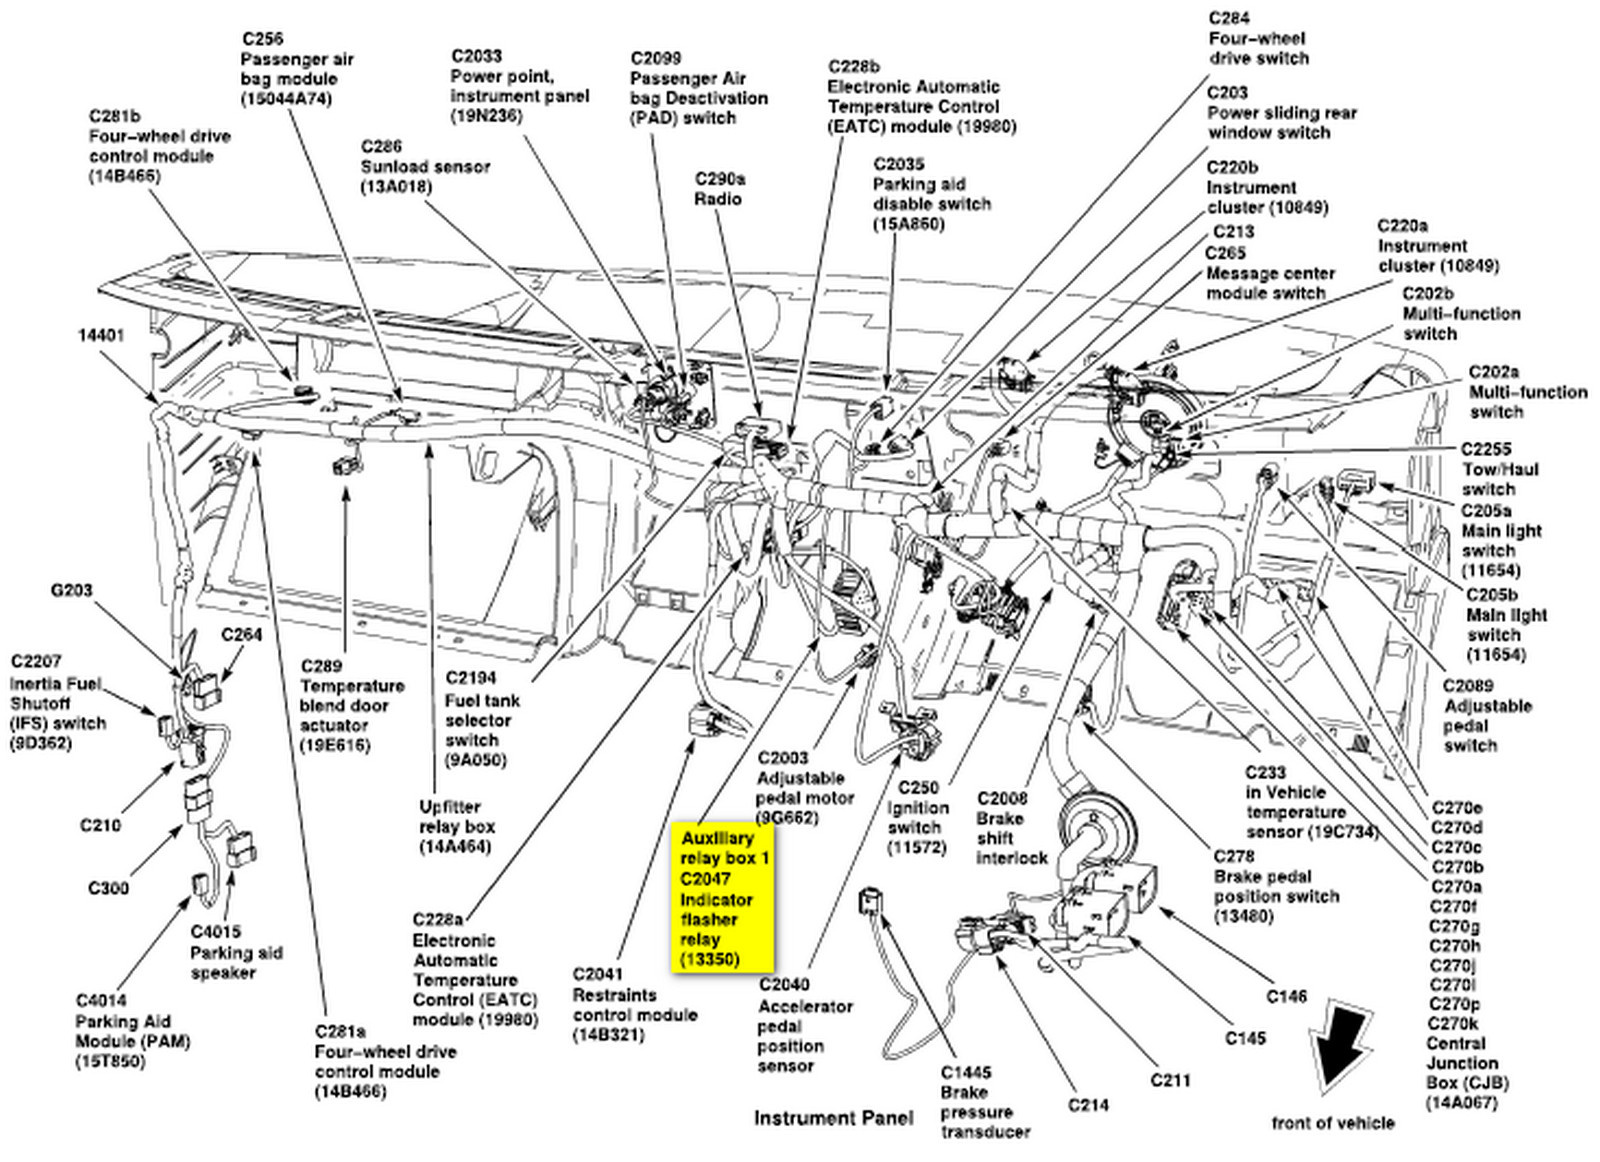 2014 Toyota Tundra Fuse Box Diagram Wiring Library Jetta Label Oil Filter Location 2013 Free Download